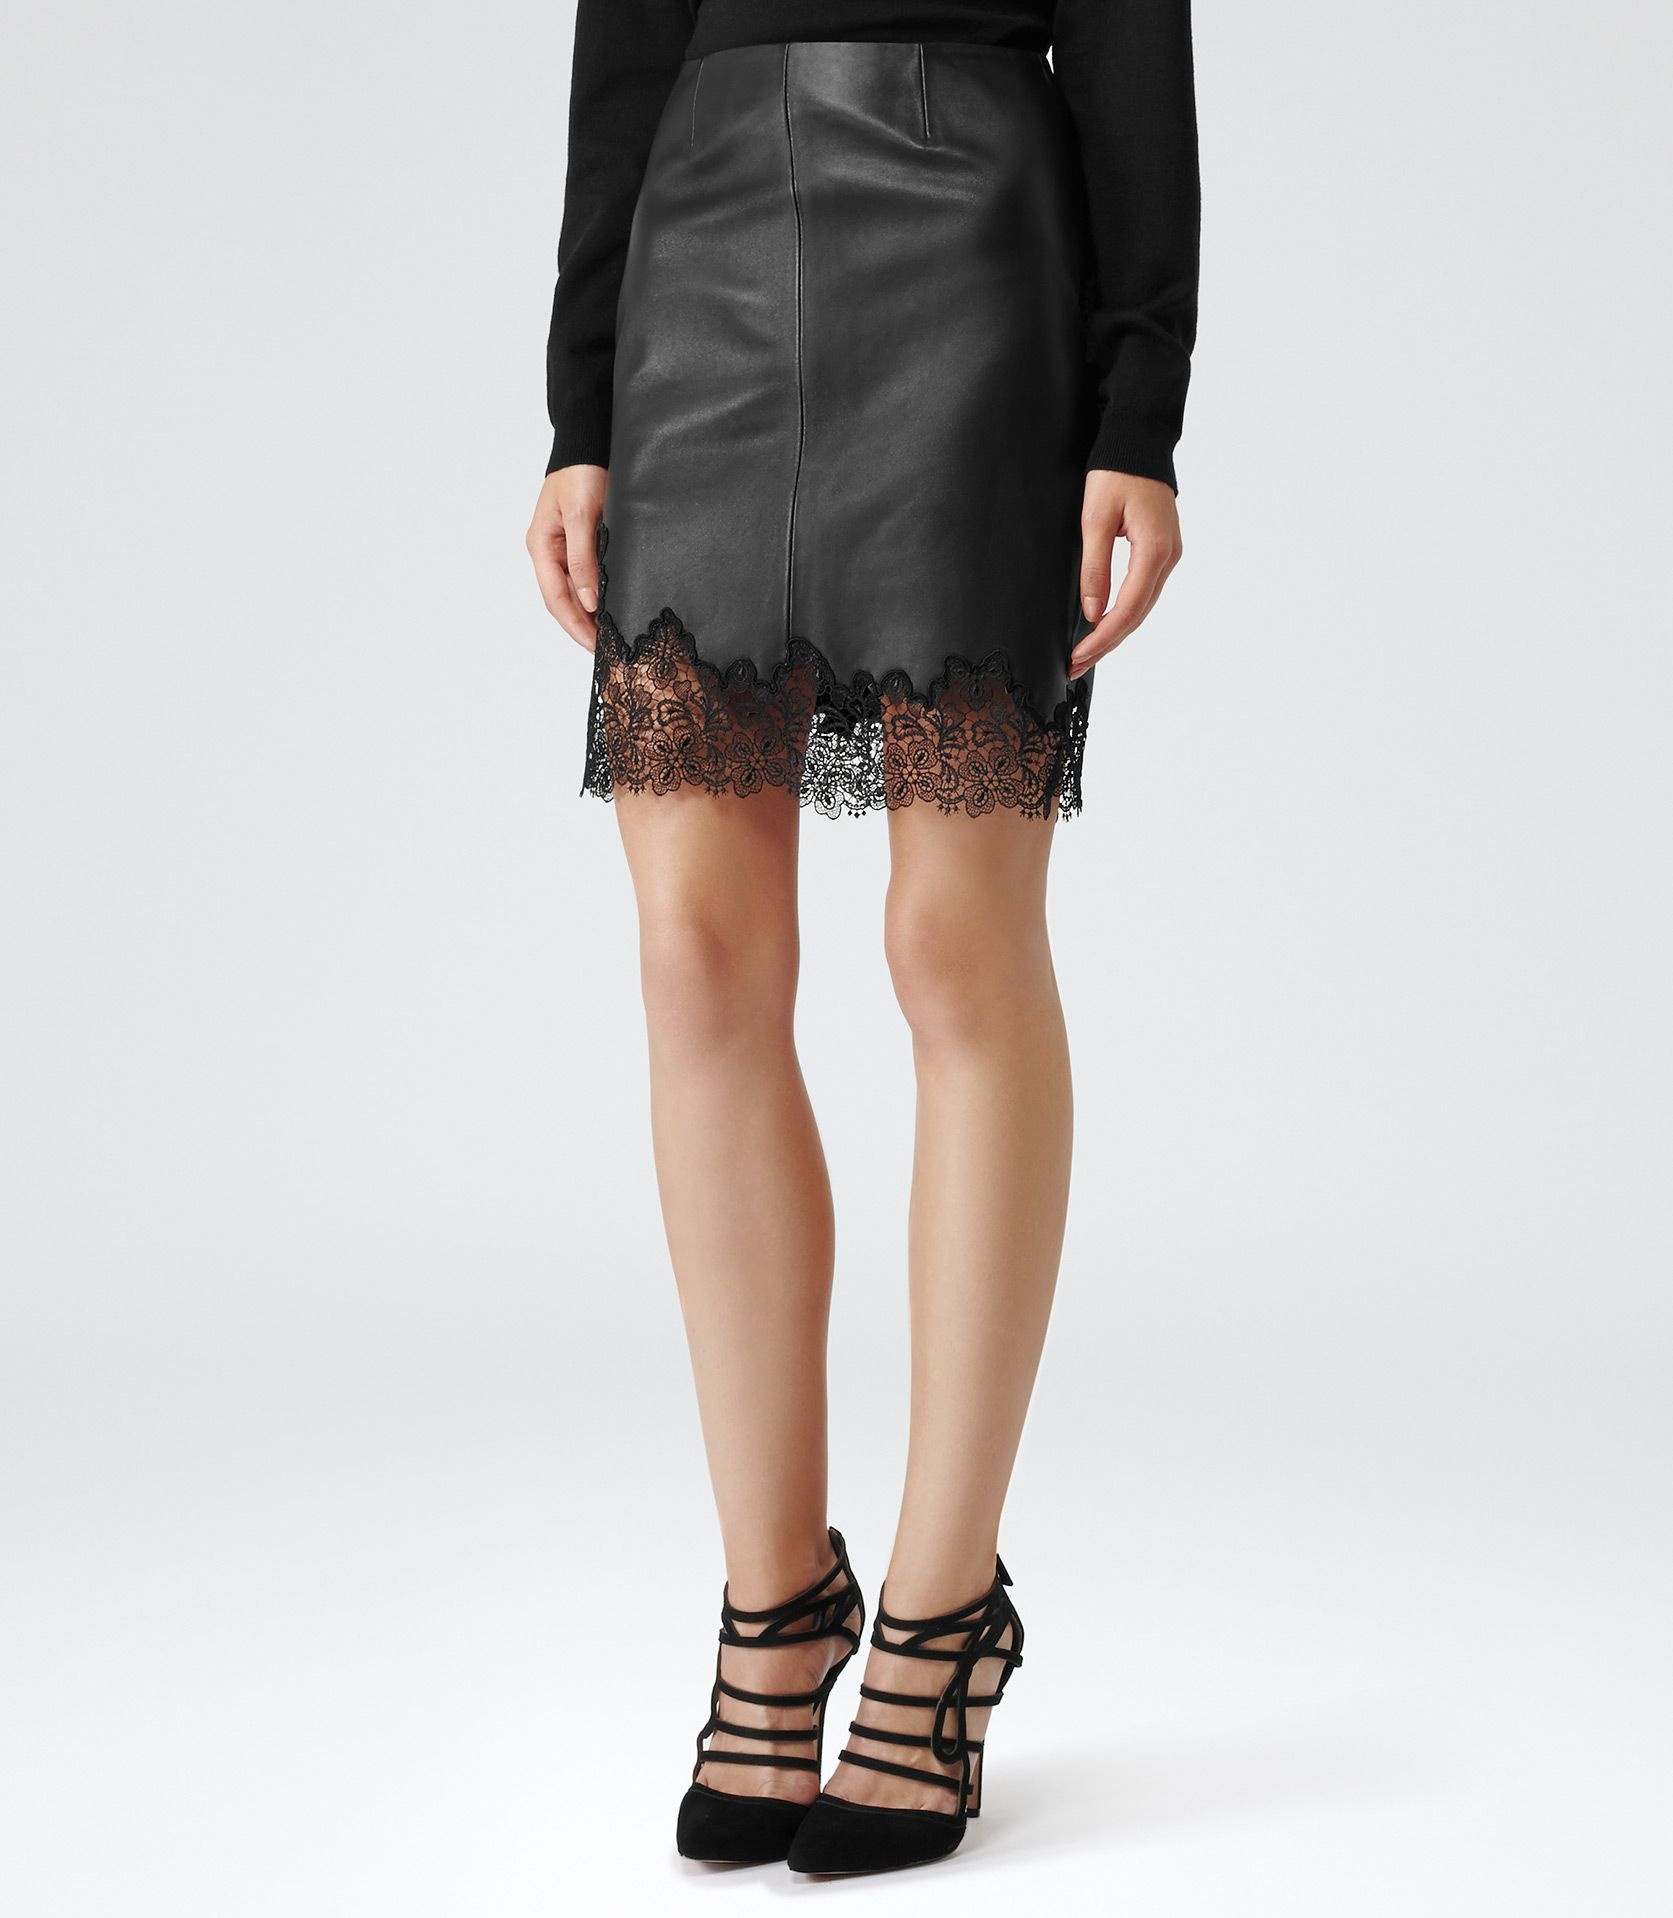 Hiro | Leather skirts, Lace and Skirts